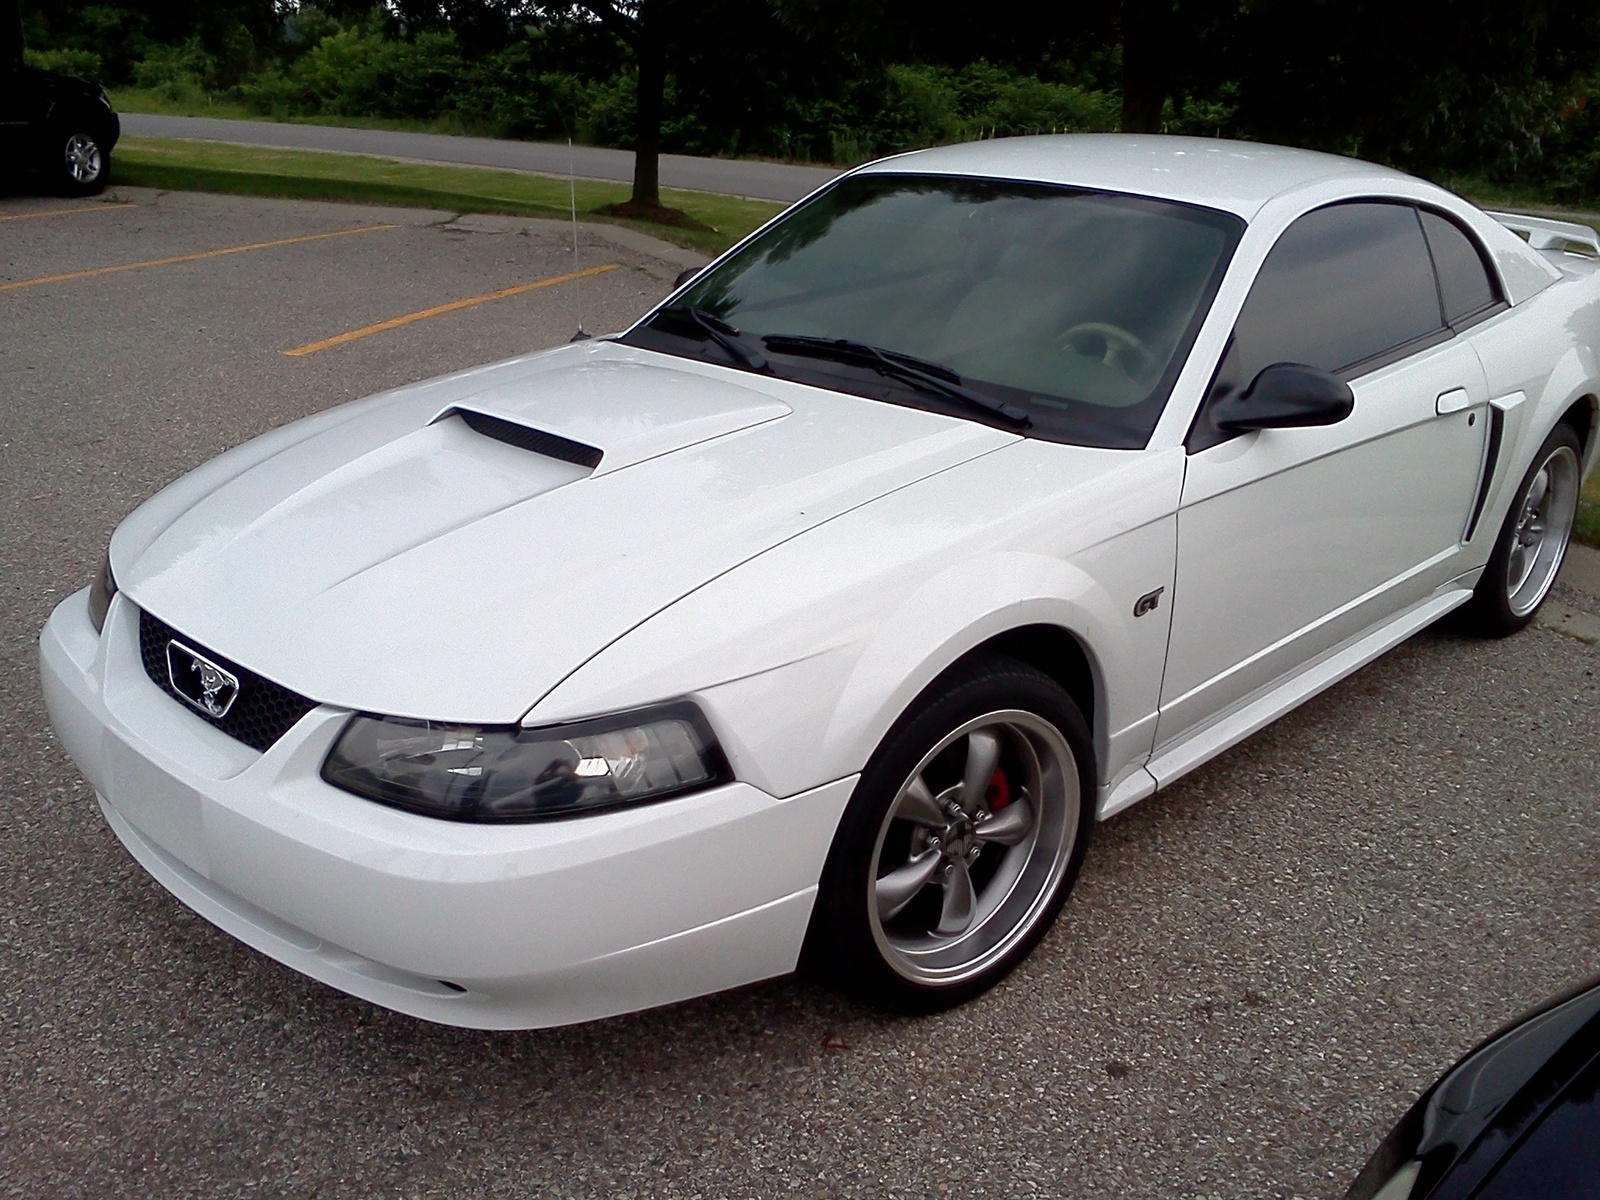 ... 2003 ford mustang gt picture view garage chris owns this ford mustang